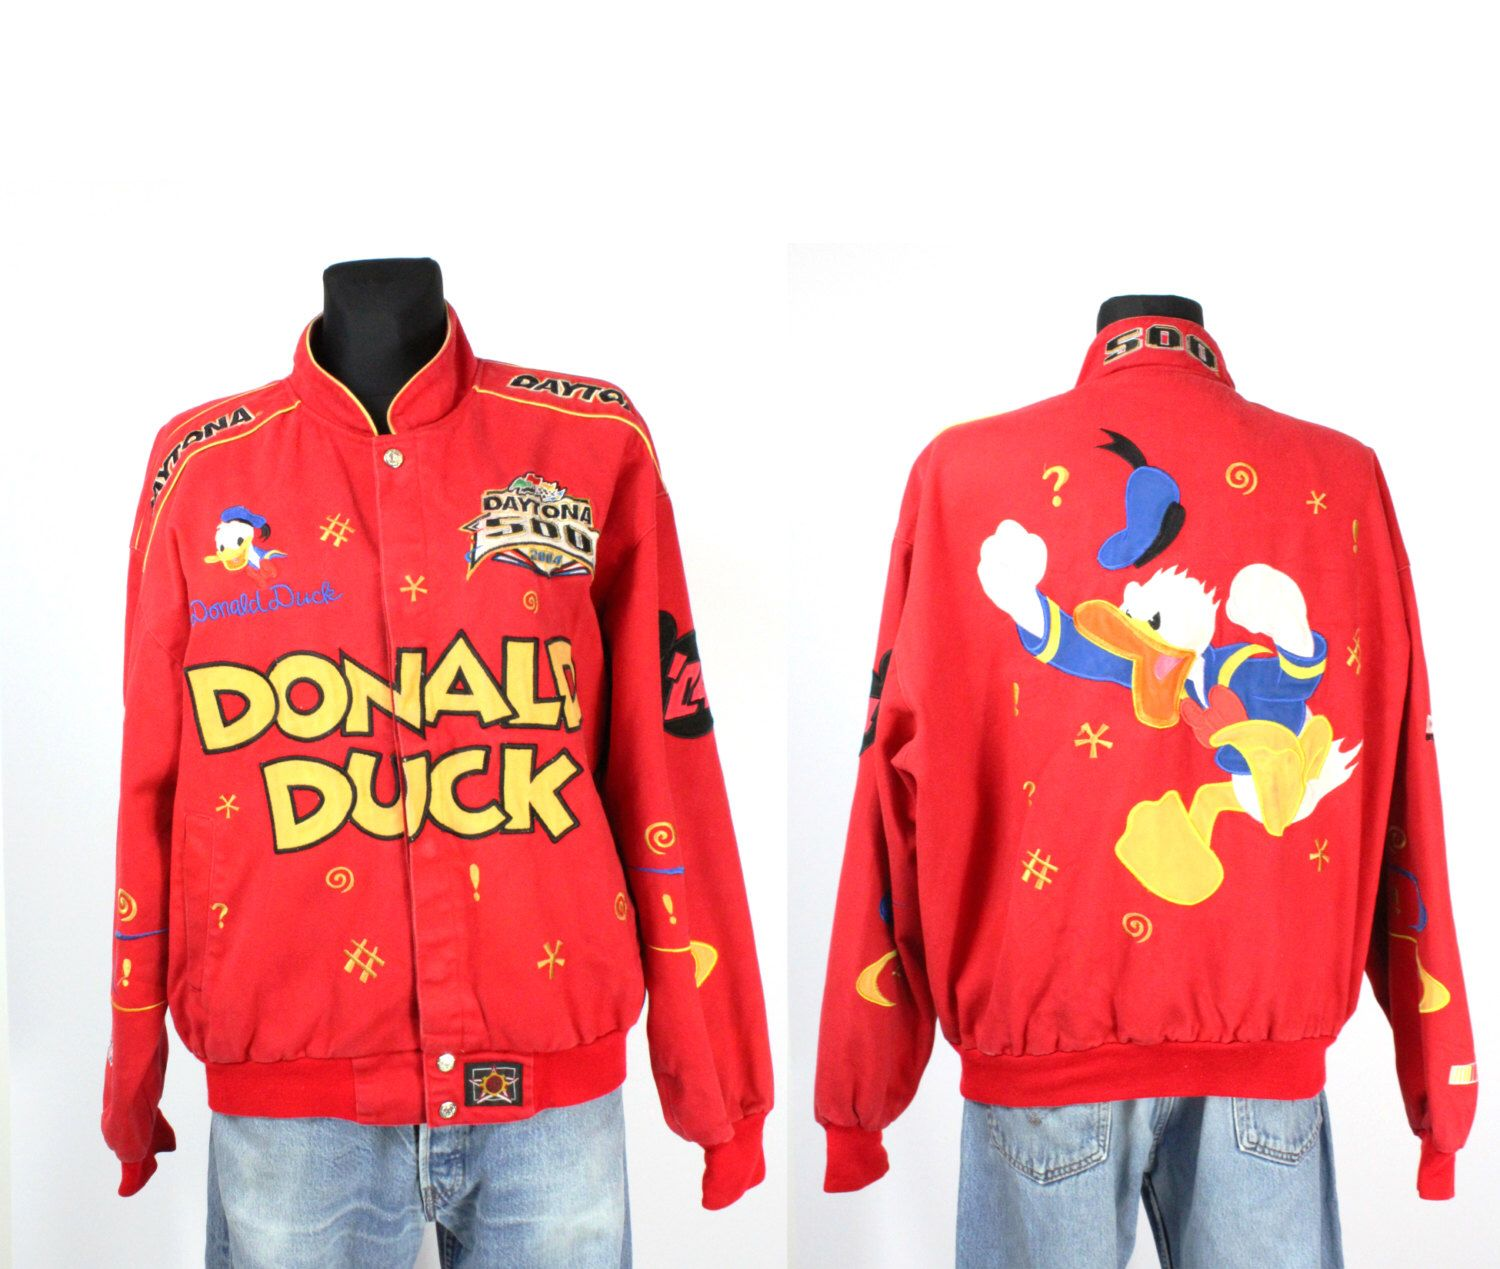 Vintage Donald Duck Dayton 500 Letterman Bomber Jacket Coat Mickey Mouse Disney Cartoon Symbols 90s 80s Nascar Sporty Baggy T Coats Jackets Bomber Jacket Baggy